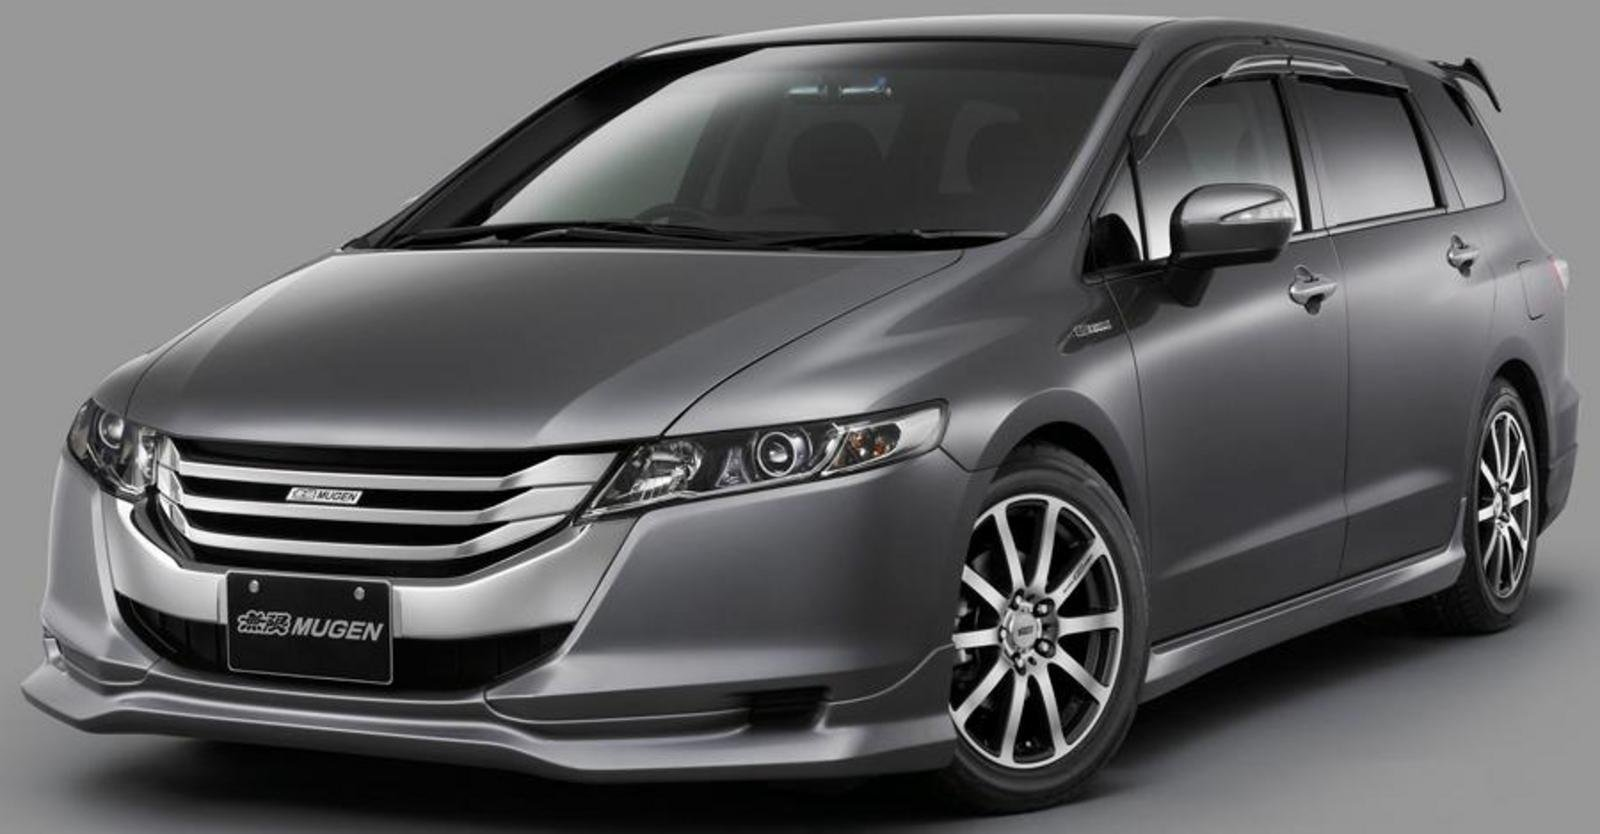 Mats For Cars >> Mugen Tuned The New Honda Odyssey News - Top Speed